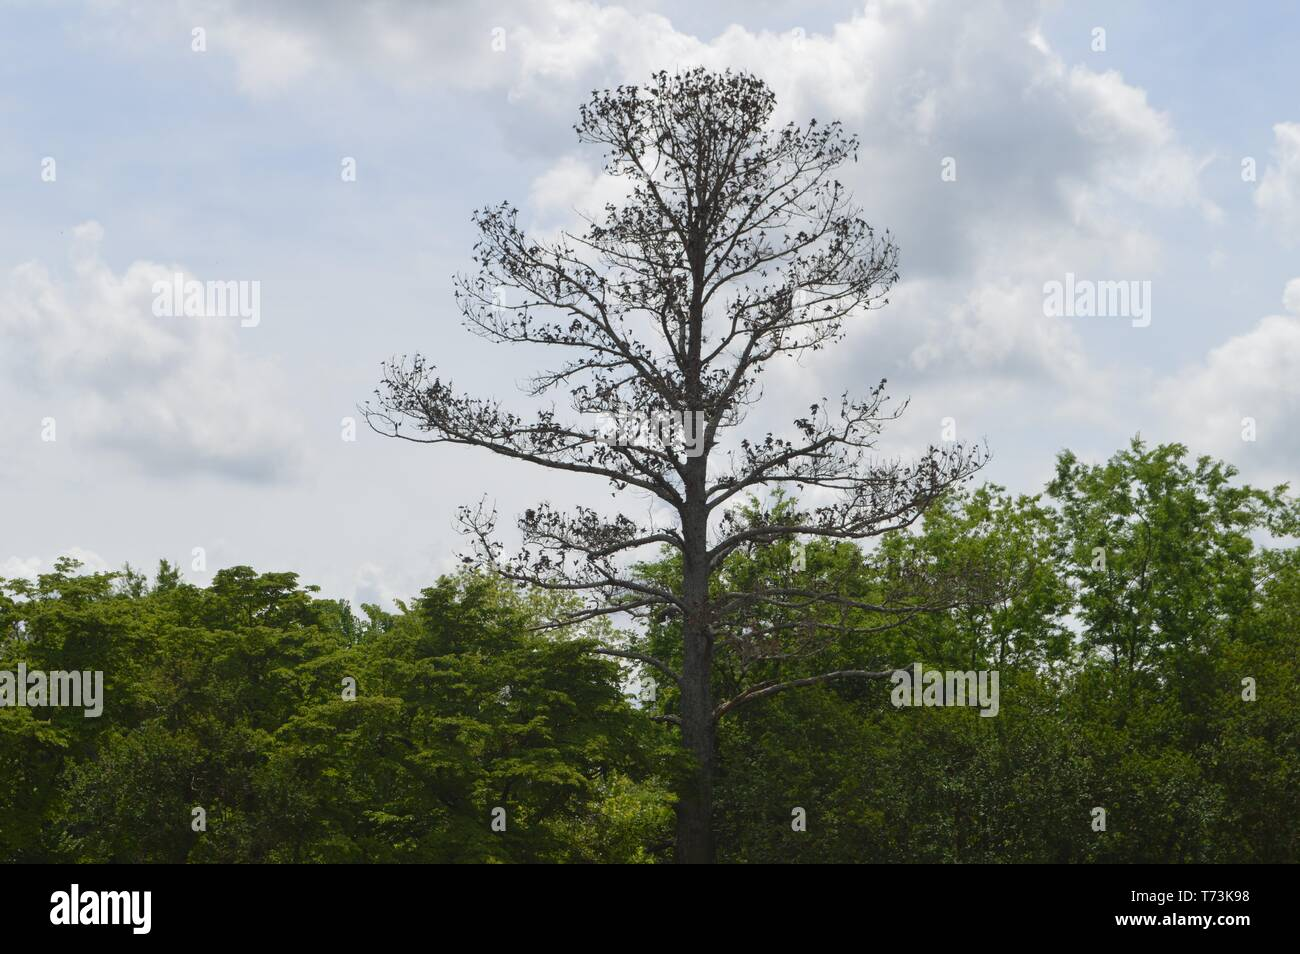 Single Unique Tree - Stock Image